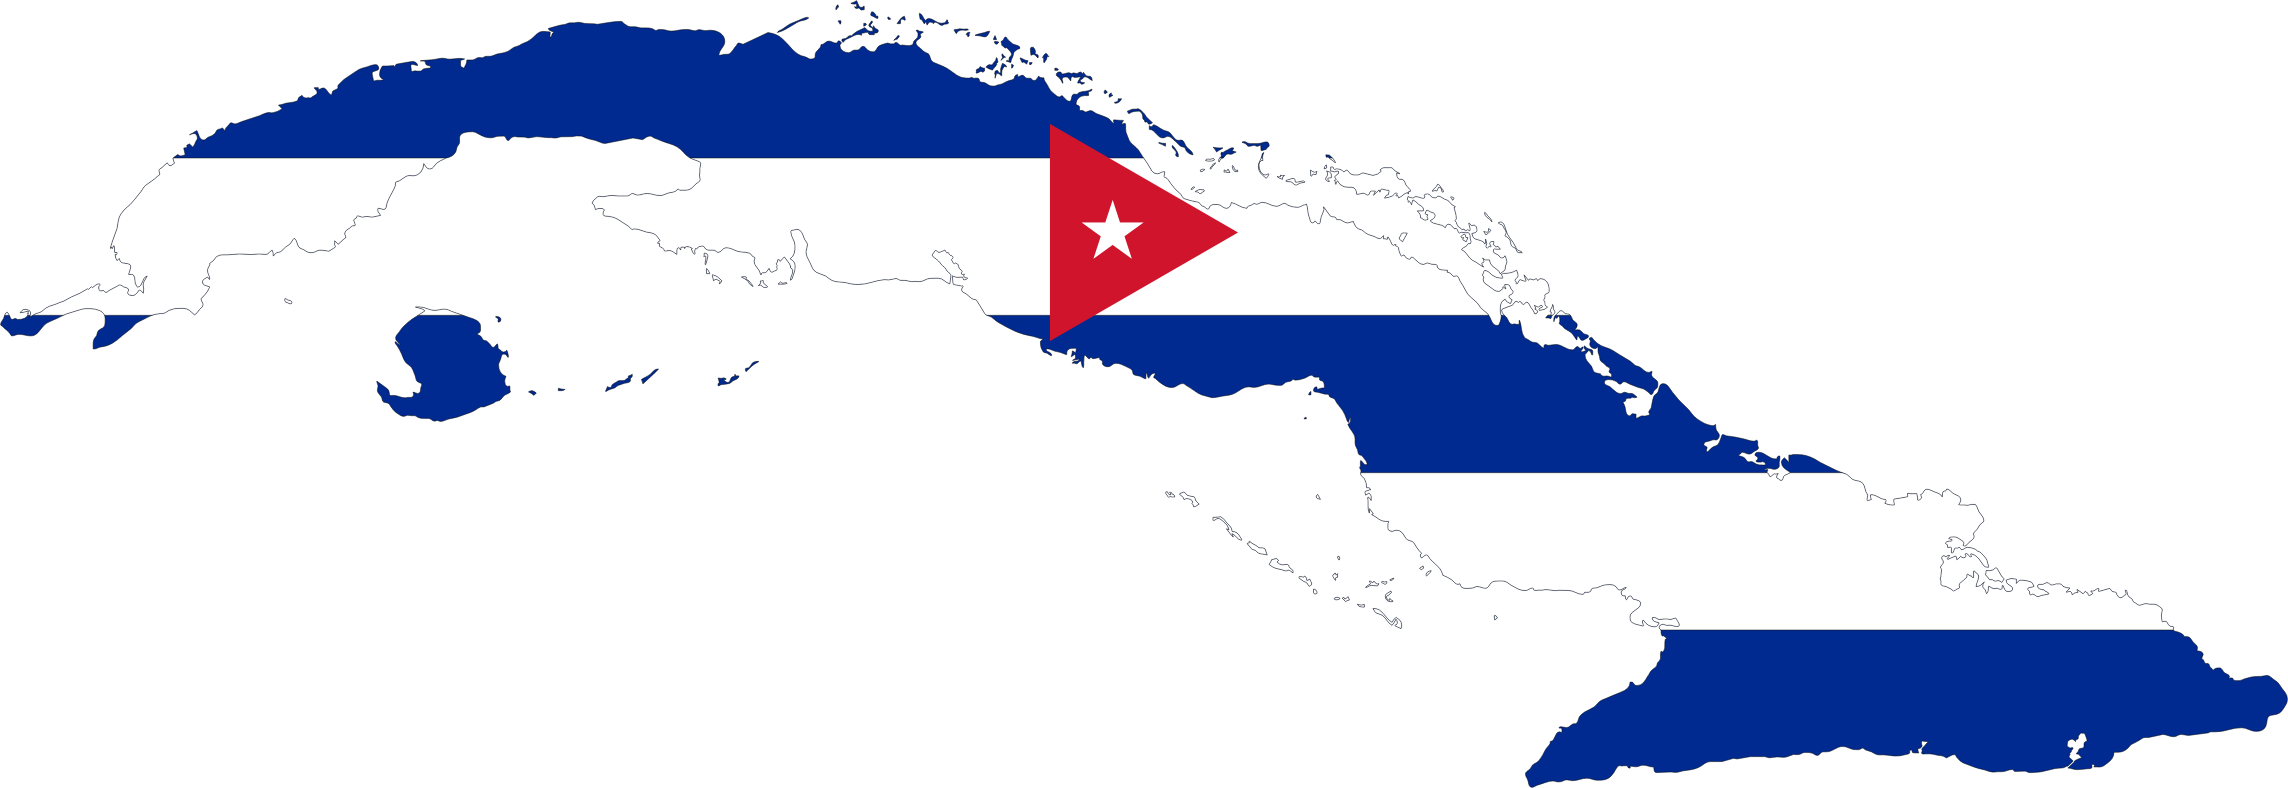 Cuba flag png. Map icons free and